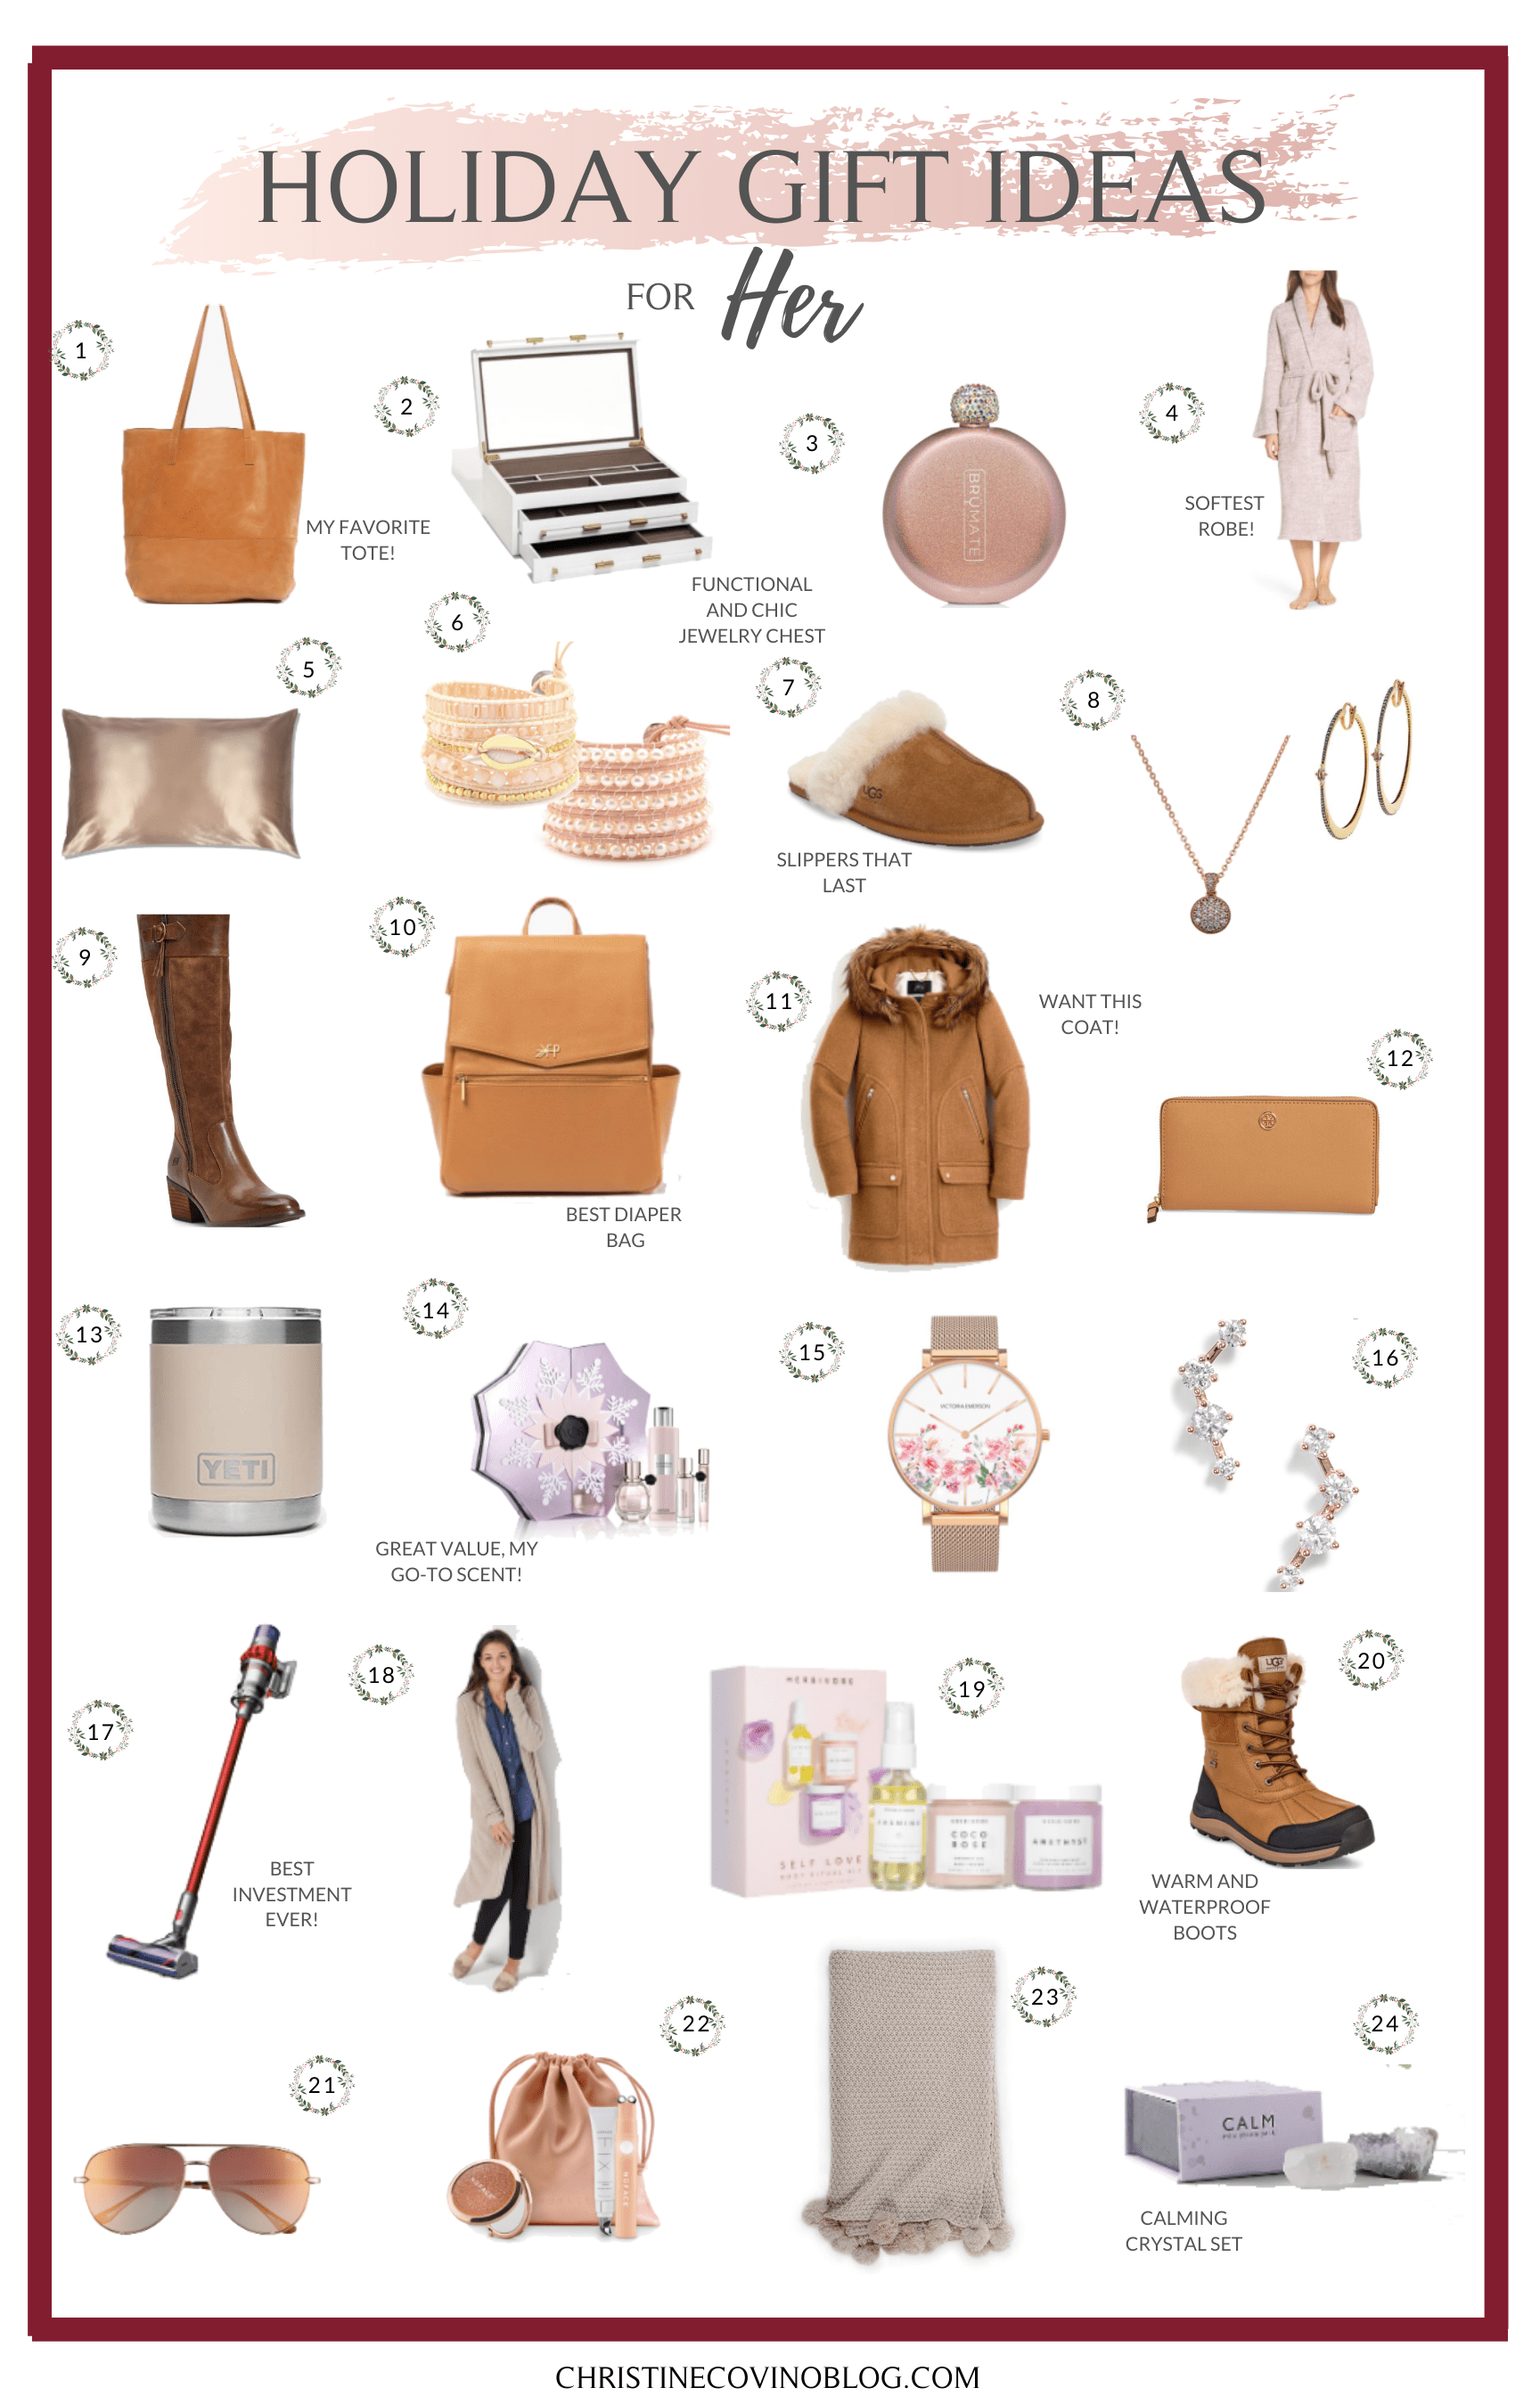 100 of the Best Holiday Gift Ideas for Her | Holiday fun ...